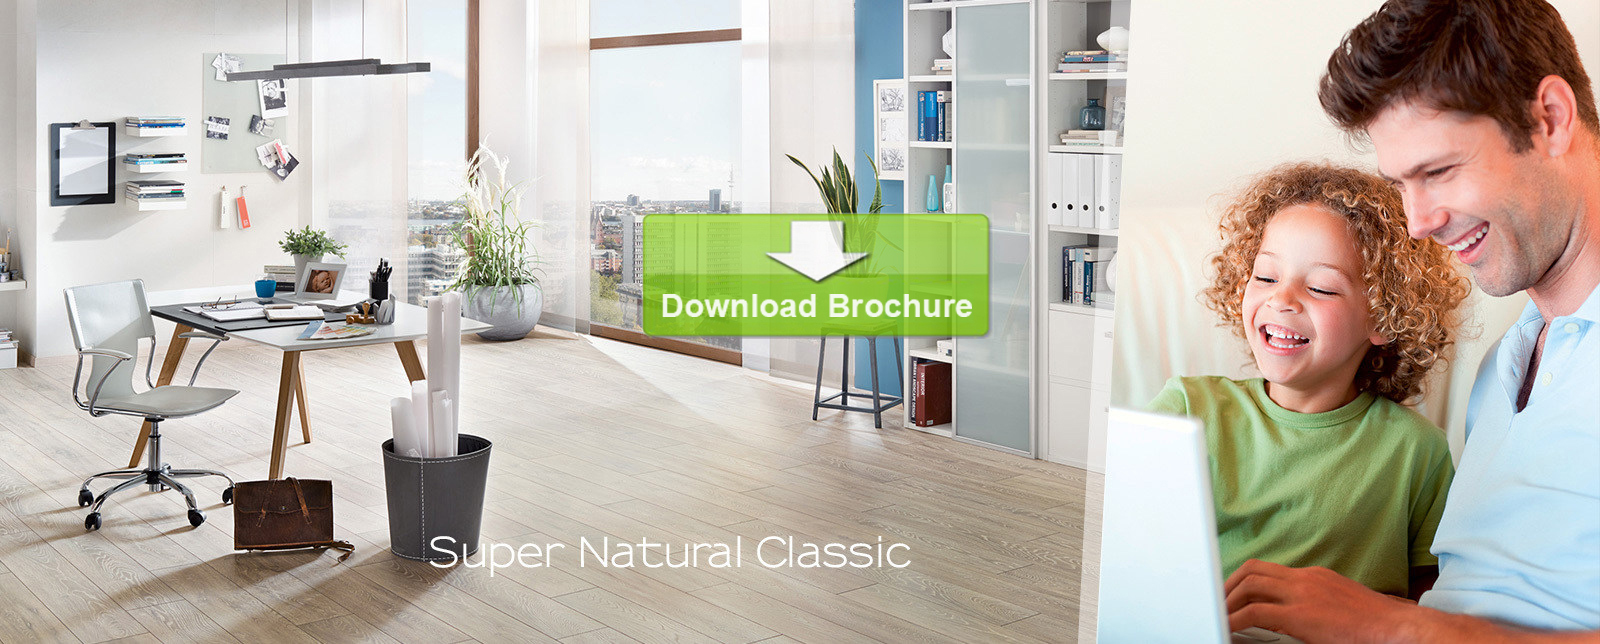 super nature classic floor